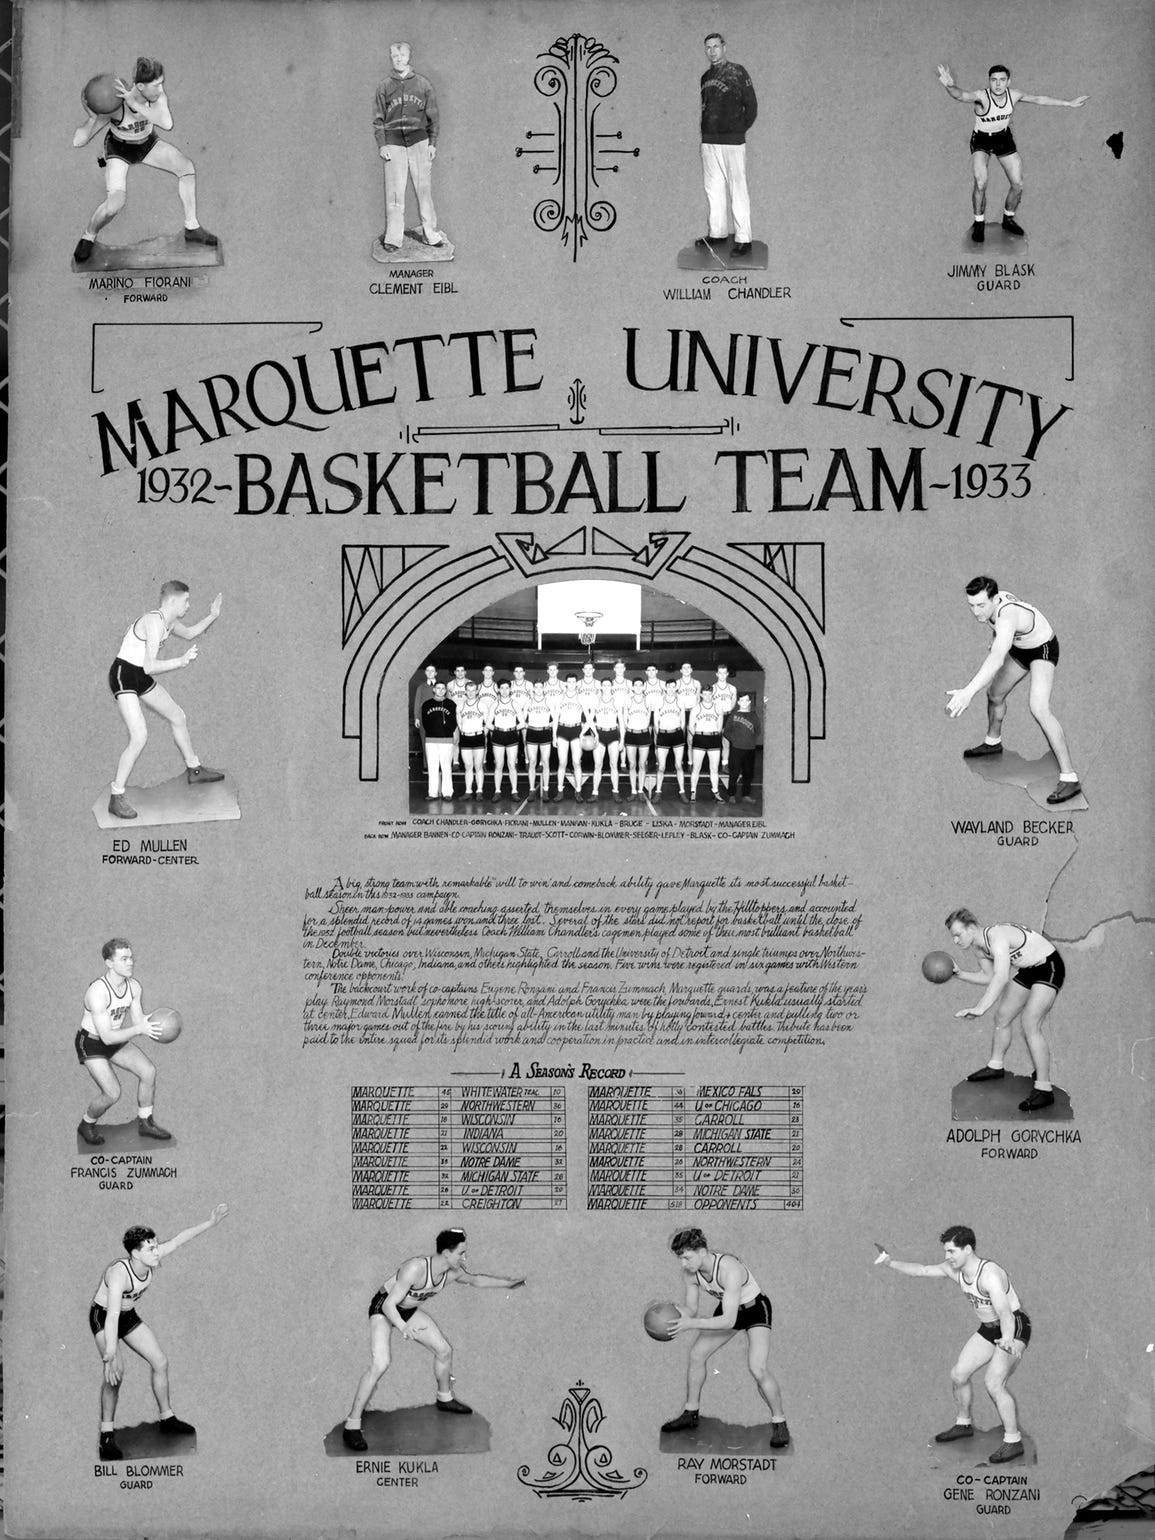 Marquette men's basketball poster from 1932.